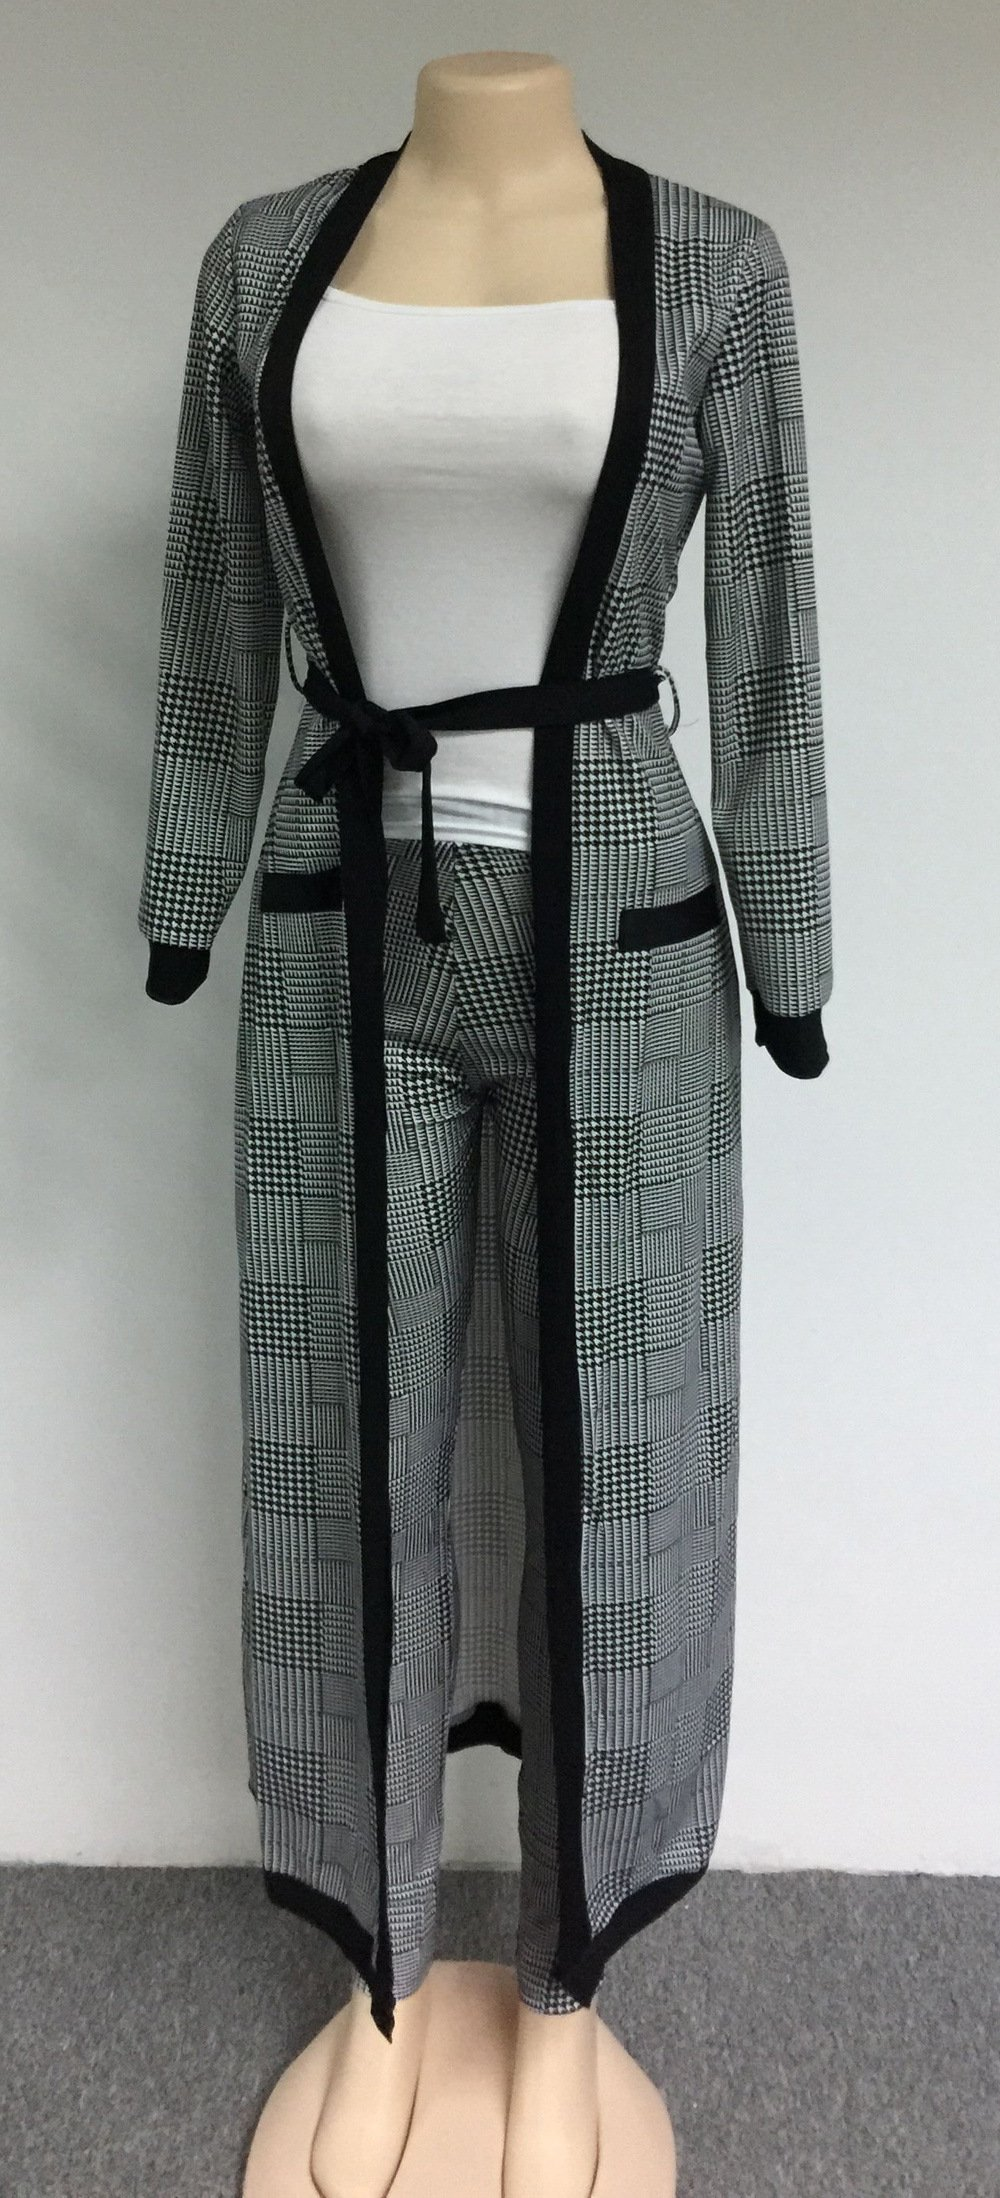 VERWIN Long Sleeve Plaid Tops and High Waist Skinny Pants Houndstooth Blazer Outfit 3 Sets XL by VERWIN (Image #6)